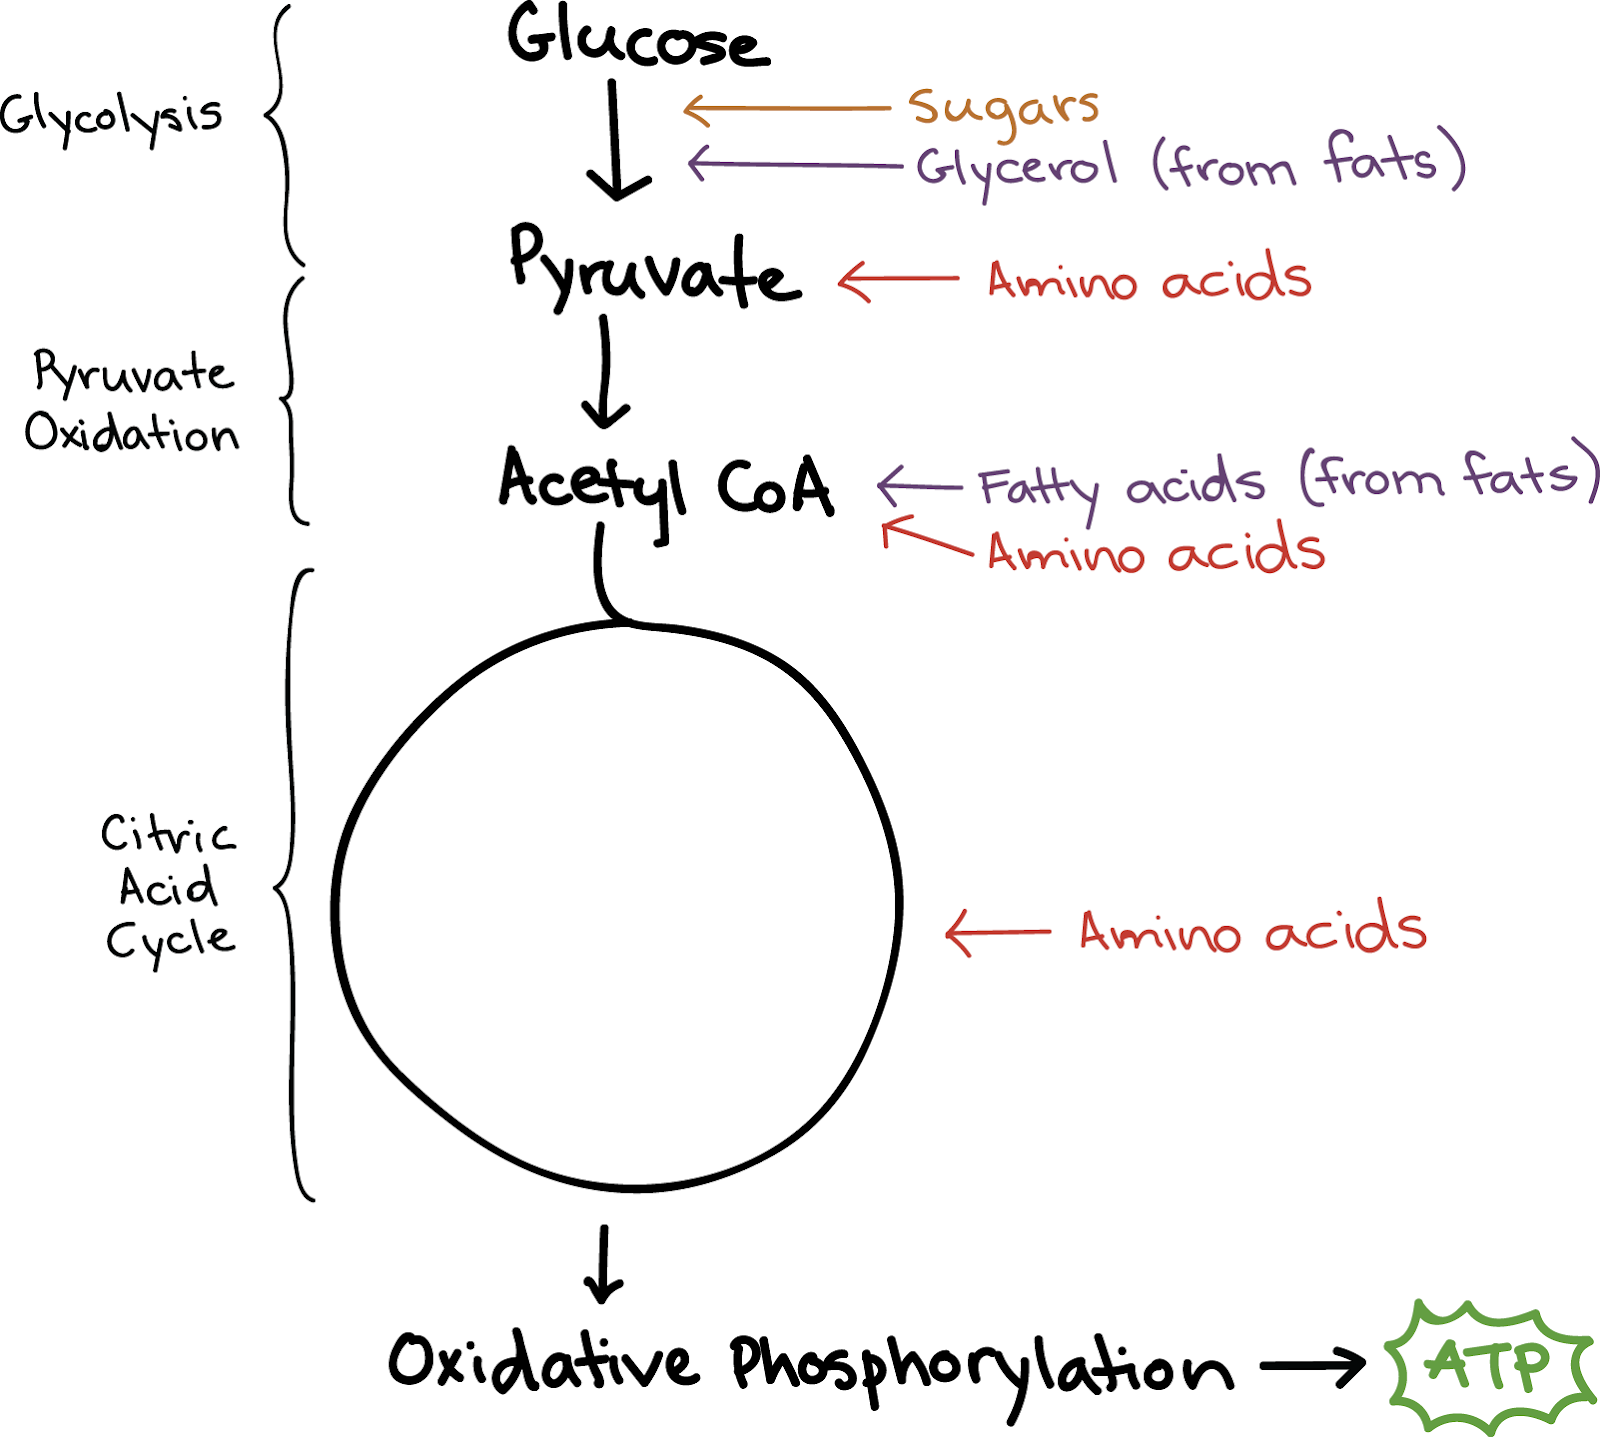 Cellular Respiration Breakdown and Macros - Category5™